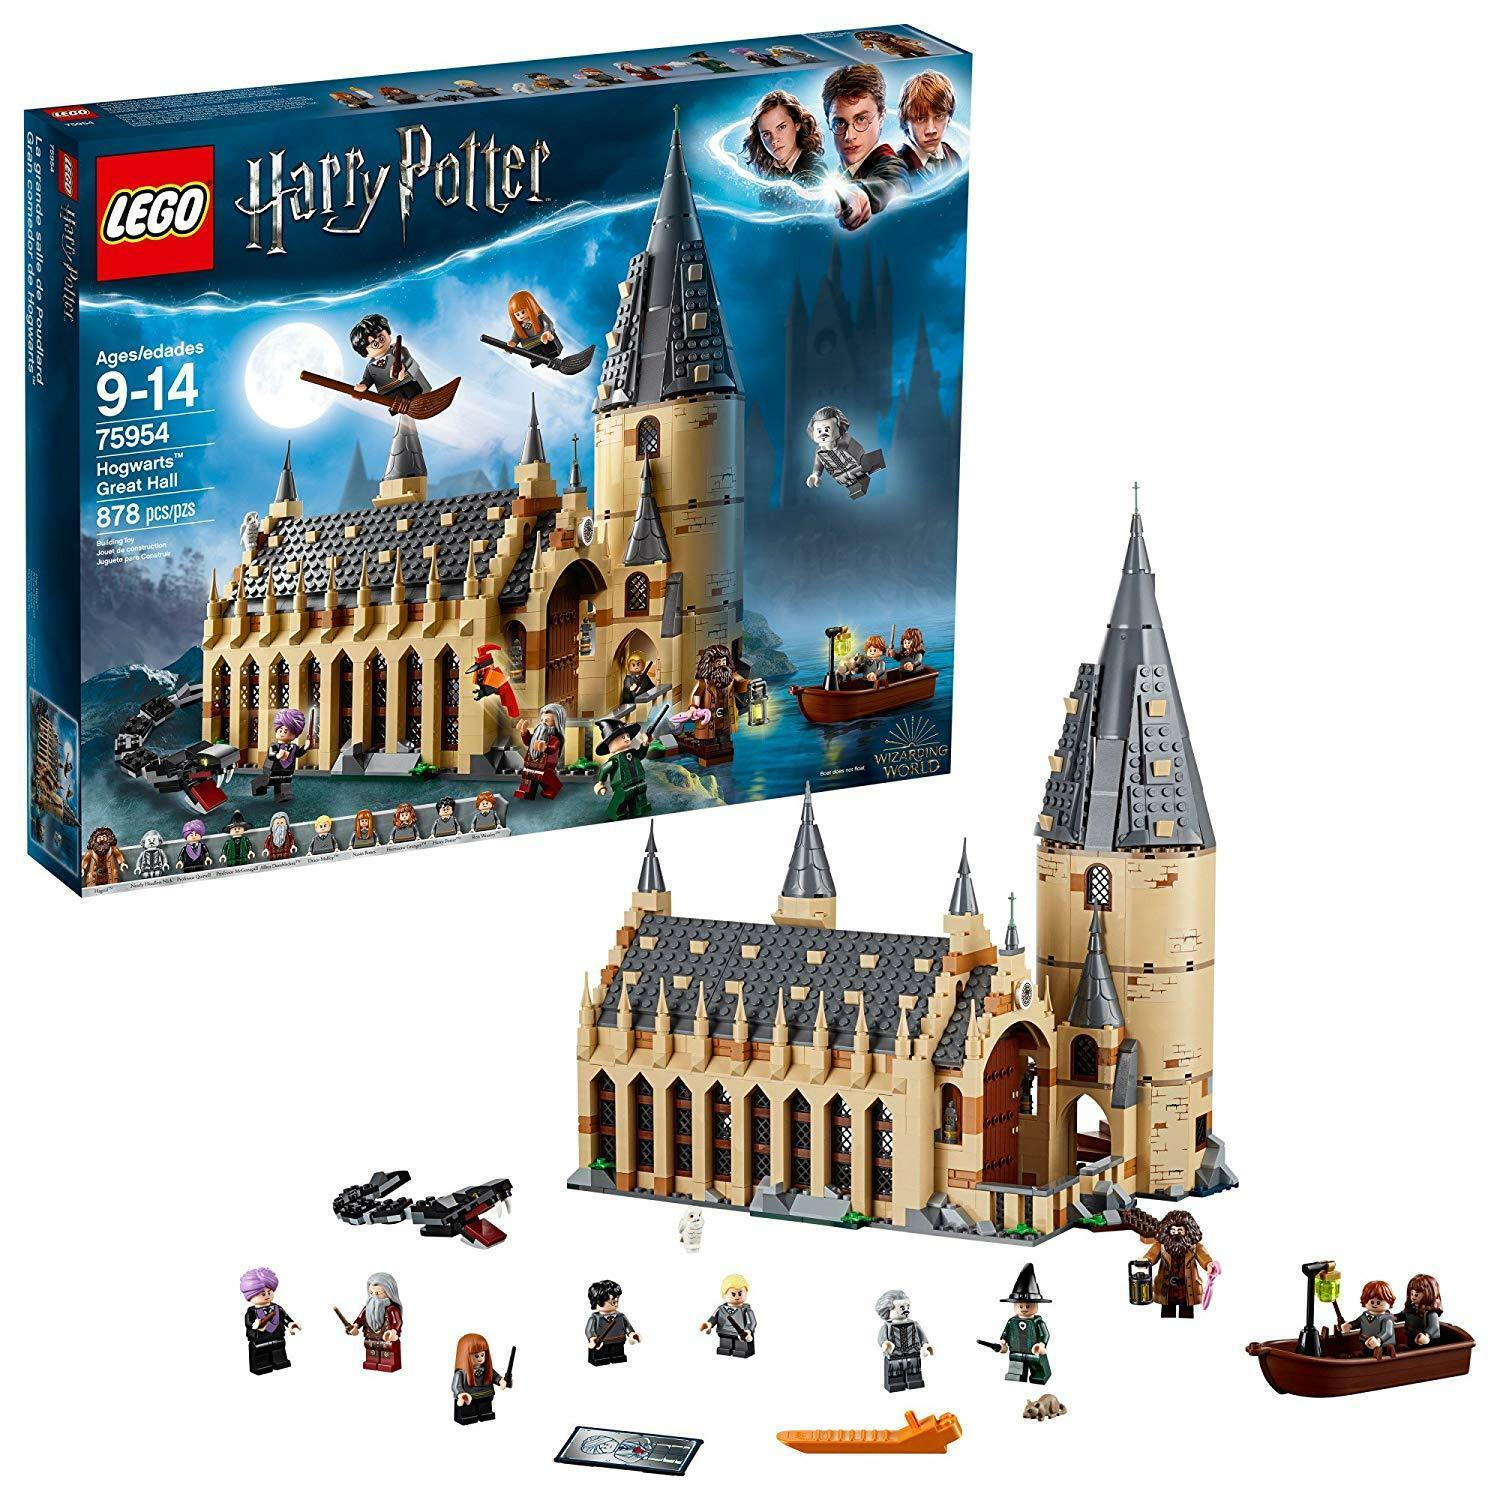 Harry Potter LEGO Set Hogwarts Great Hall Building Kit - 800+ Piece Kids Toy